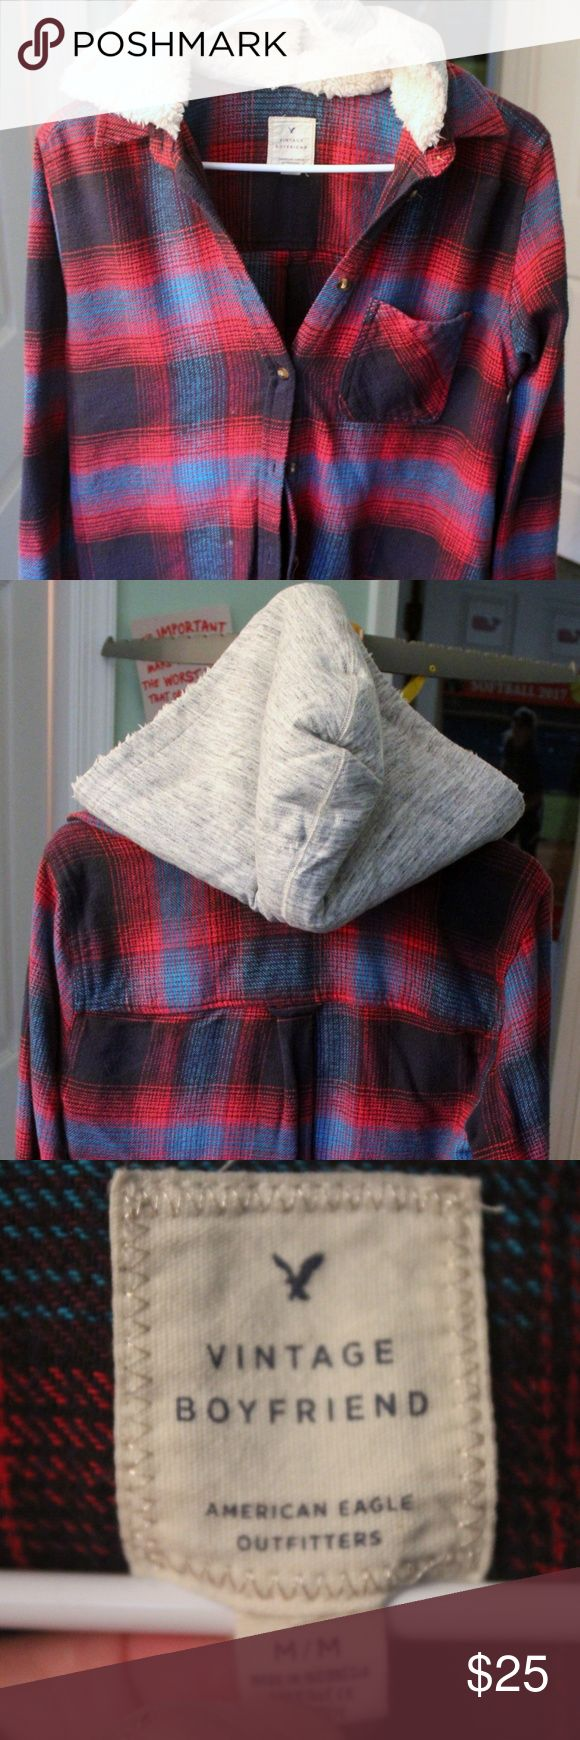 American Eagle Vintage Boyfriend Hooded Flannel American Eagle Vintage Boyfriend style. Red and Blue plaid Flannel with lined hood to create the effect of a jacket. Soft cotton flannel material with buttons at the cuff. Can be worn as a light jacket. Hood is very soft. Runs trues to size - size Medium American Eagle Outfitters Tops